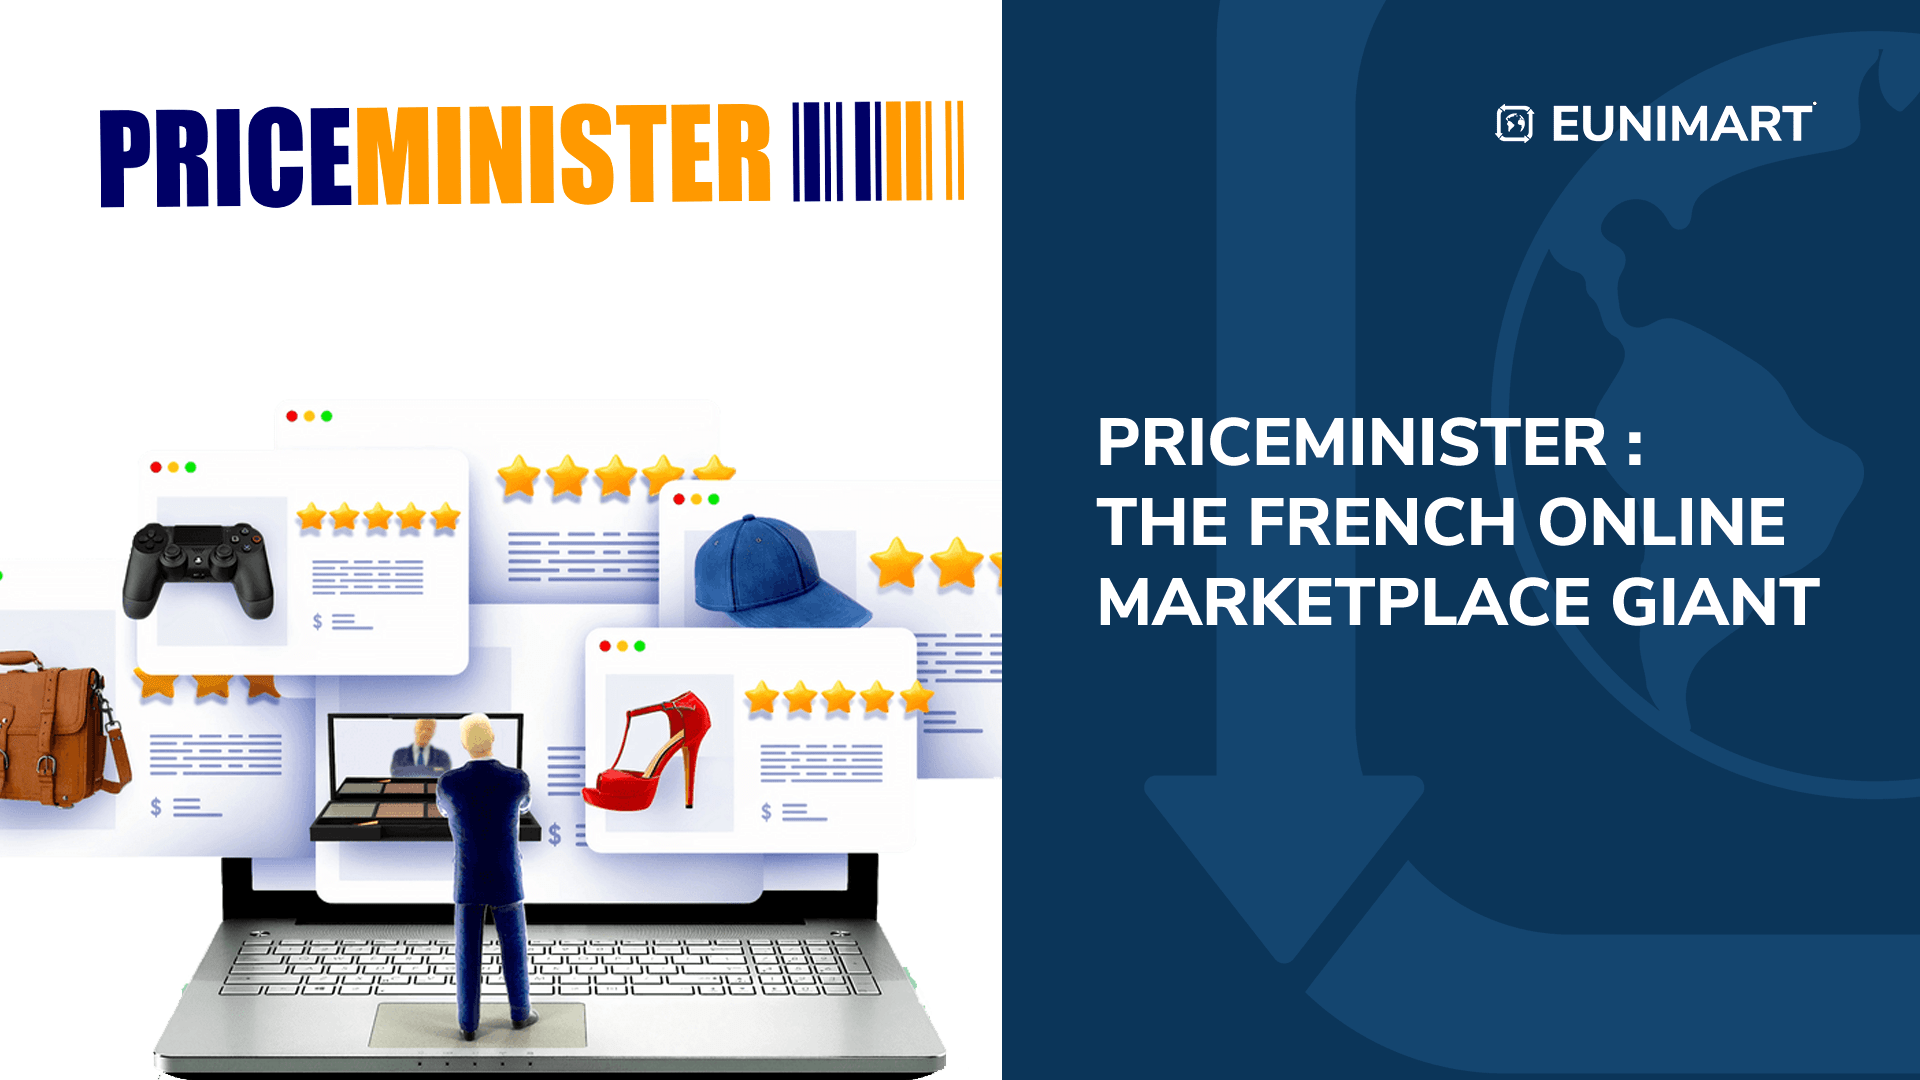 Priceminister: The French Online Marketplace Giant